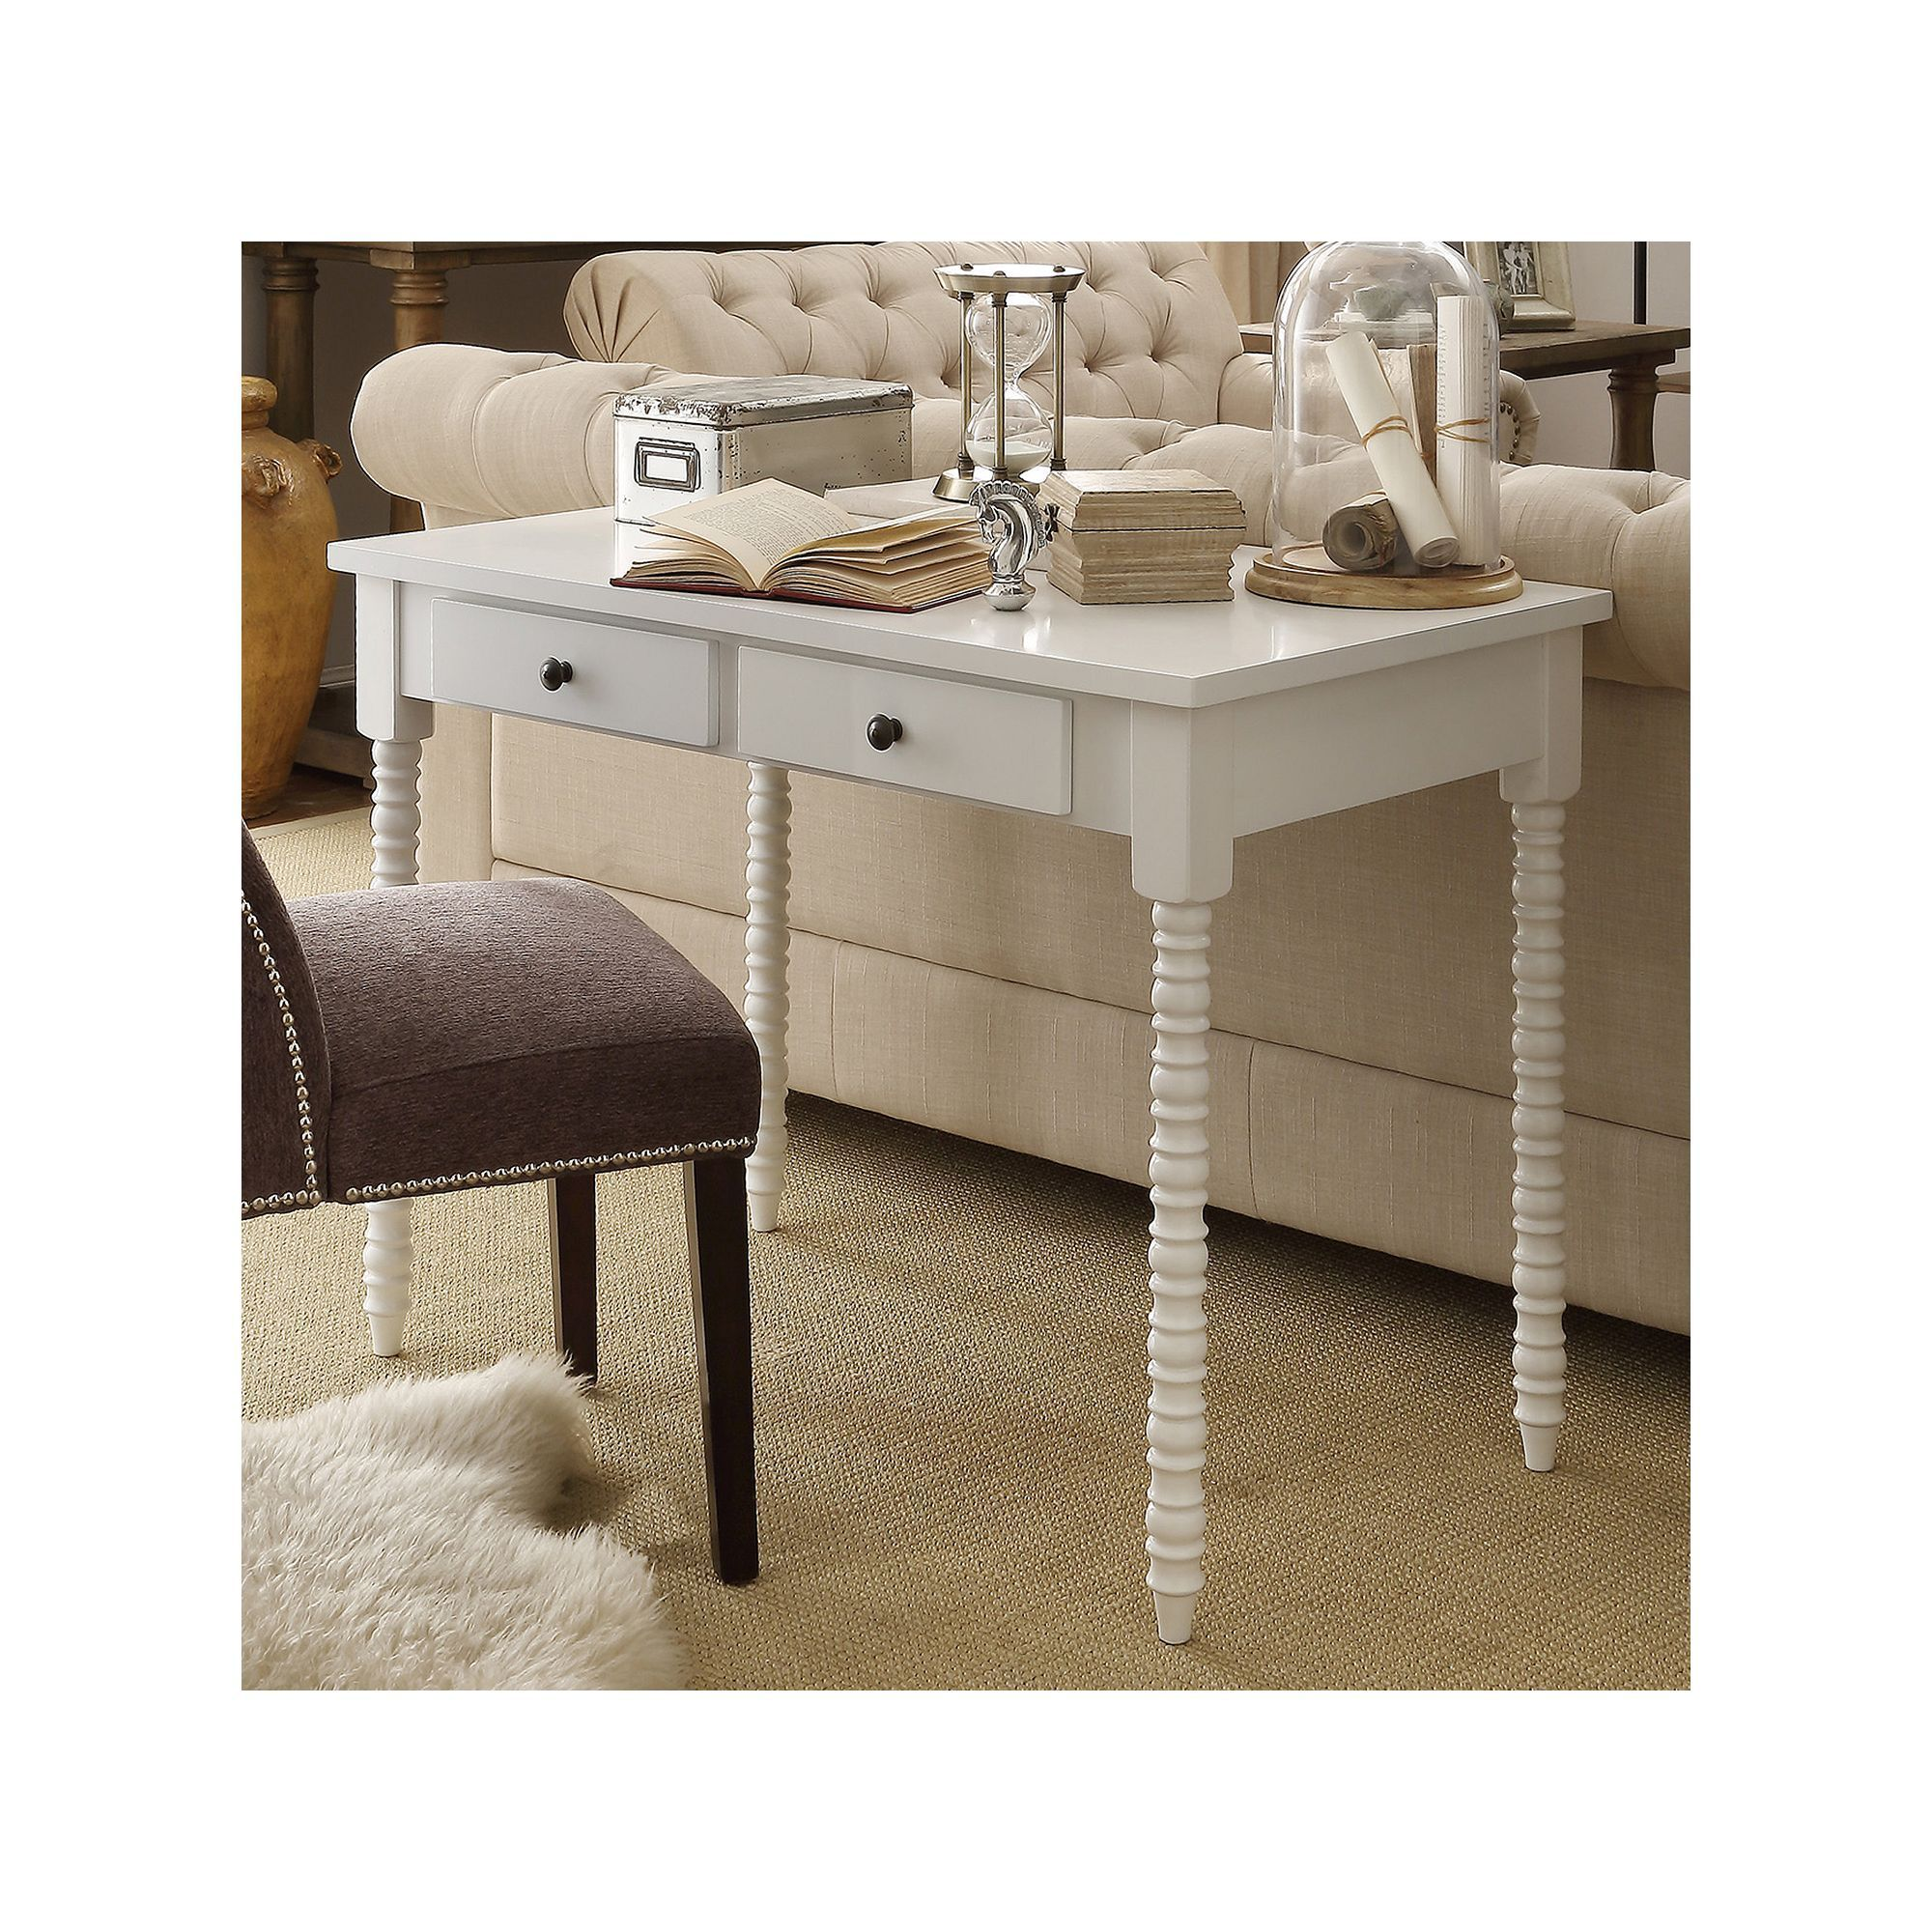 b writing white studio tone m distressed wash drawers drawer provincial desk two style baxton p store edouard french with